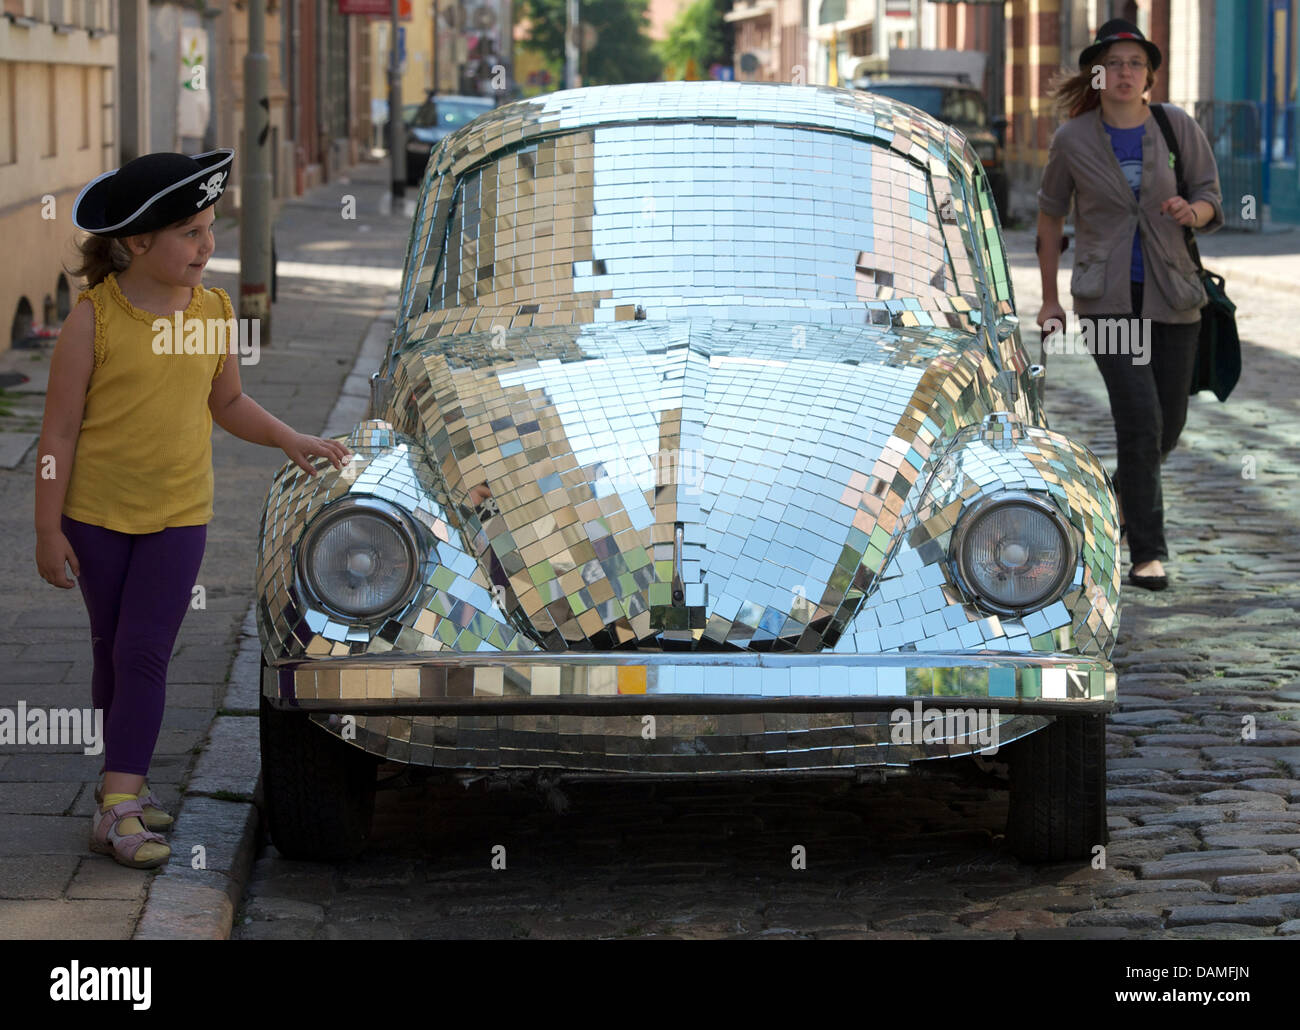 A VW beetle with 11,000 mirror mosaics stands as art work 'That what shines' (2011) by Ked Olszewski in - Stock Image